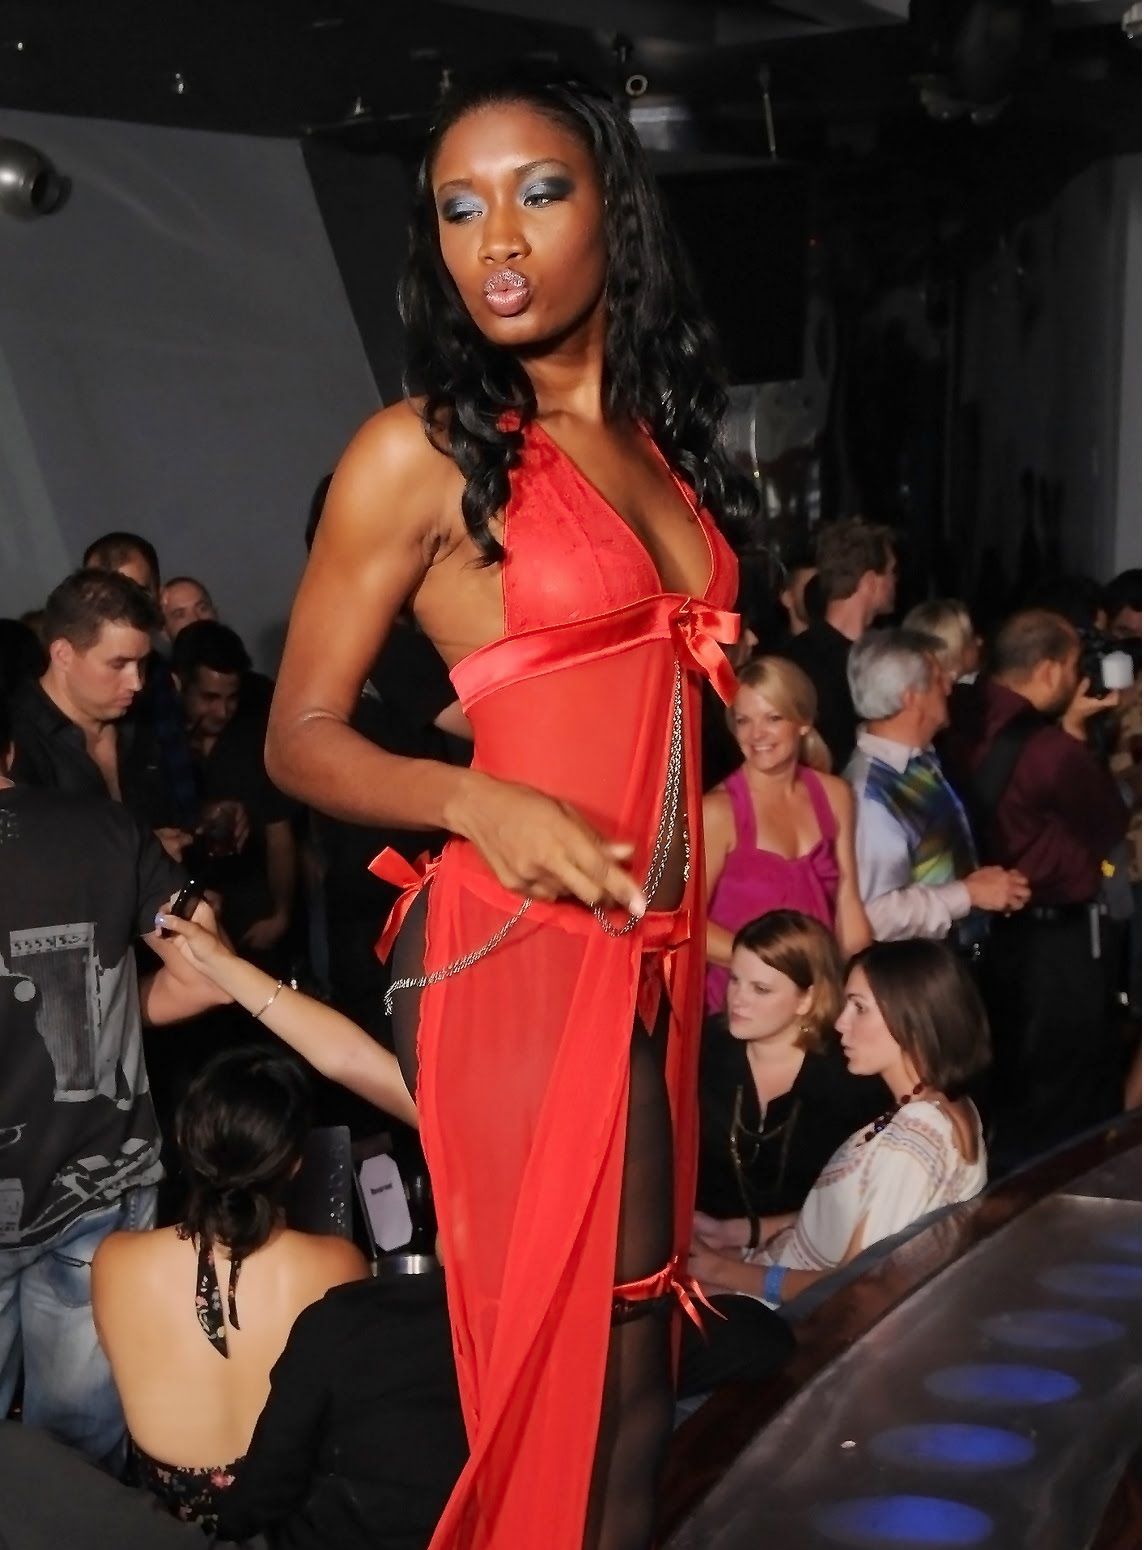 Anaiyah magazine blazing the runway miami lace lingerie for Runway club miami